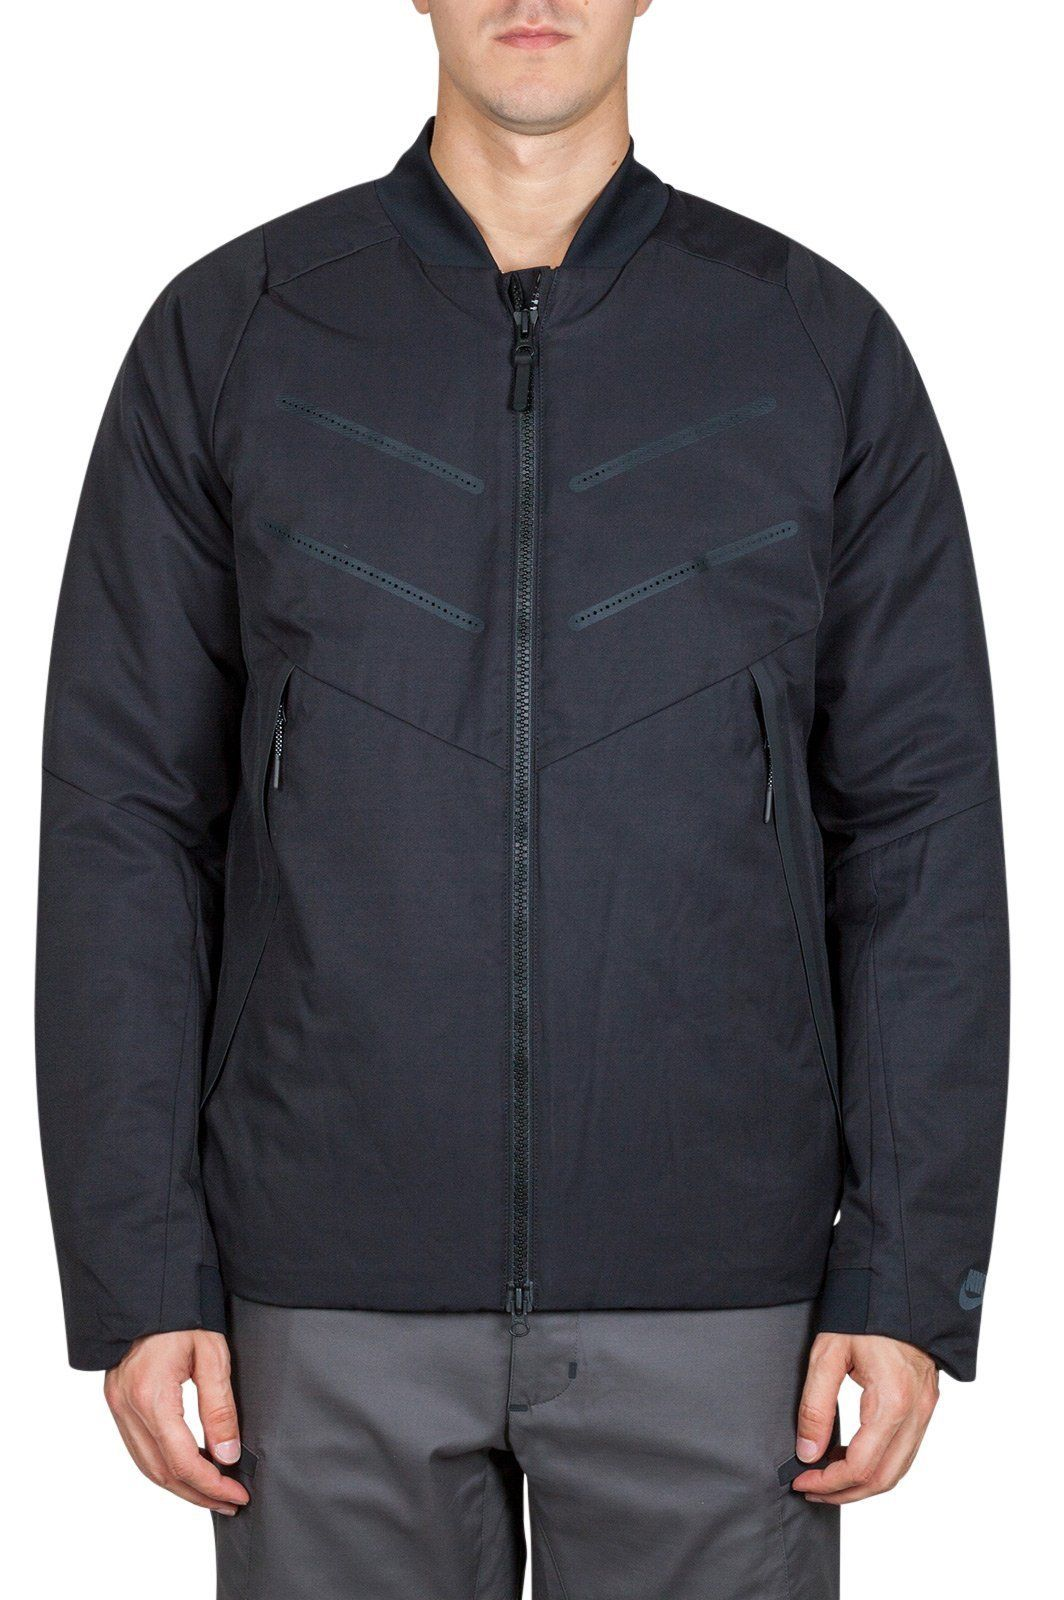 efbc4d411858 The Nike Sportswear AeroLoft Bomber Men s Jacket offers lightweight defence  against the cold. It features